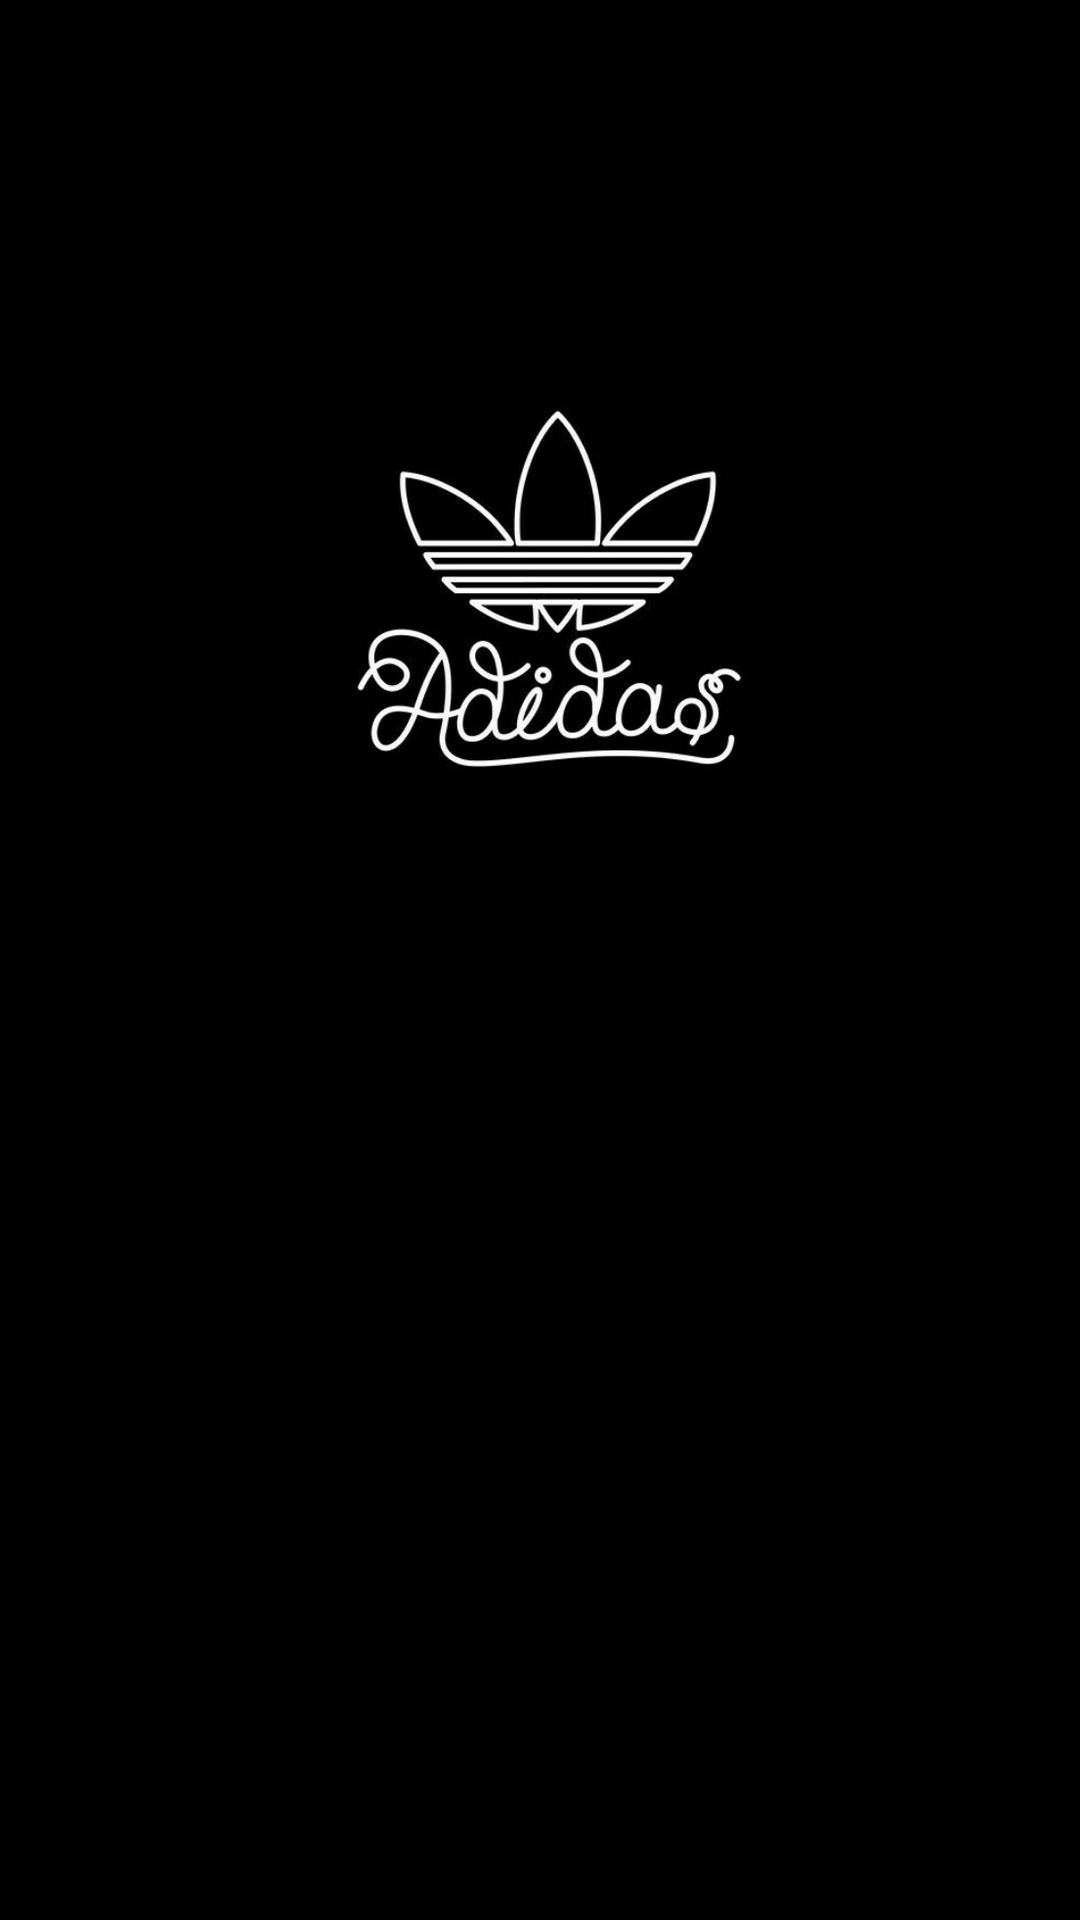 Wallpaper Android Adidas Logo